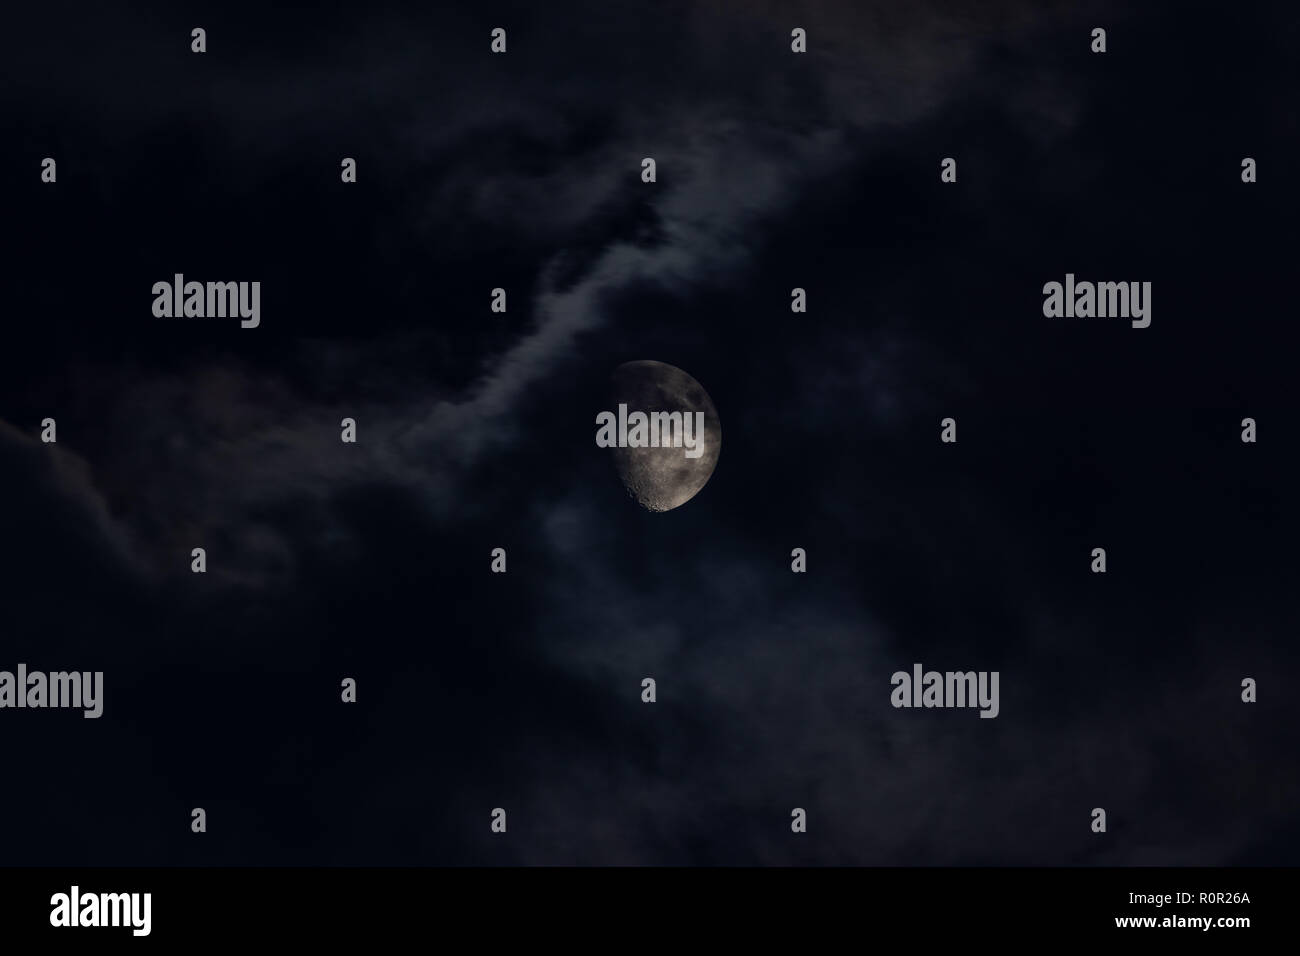 Moon behind clouds - Stock Image